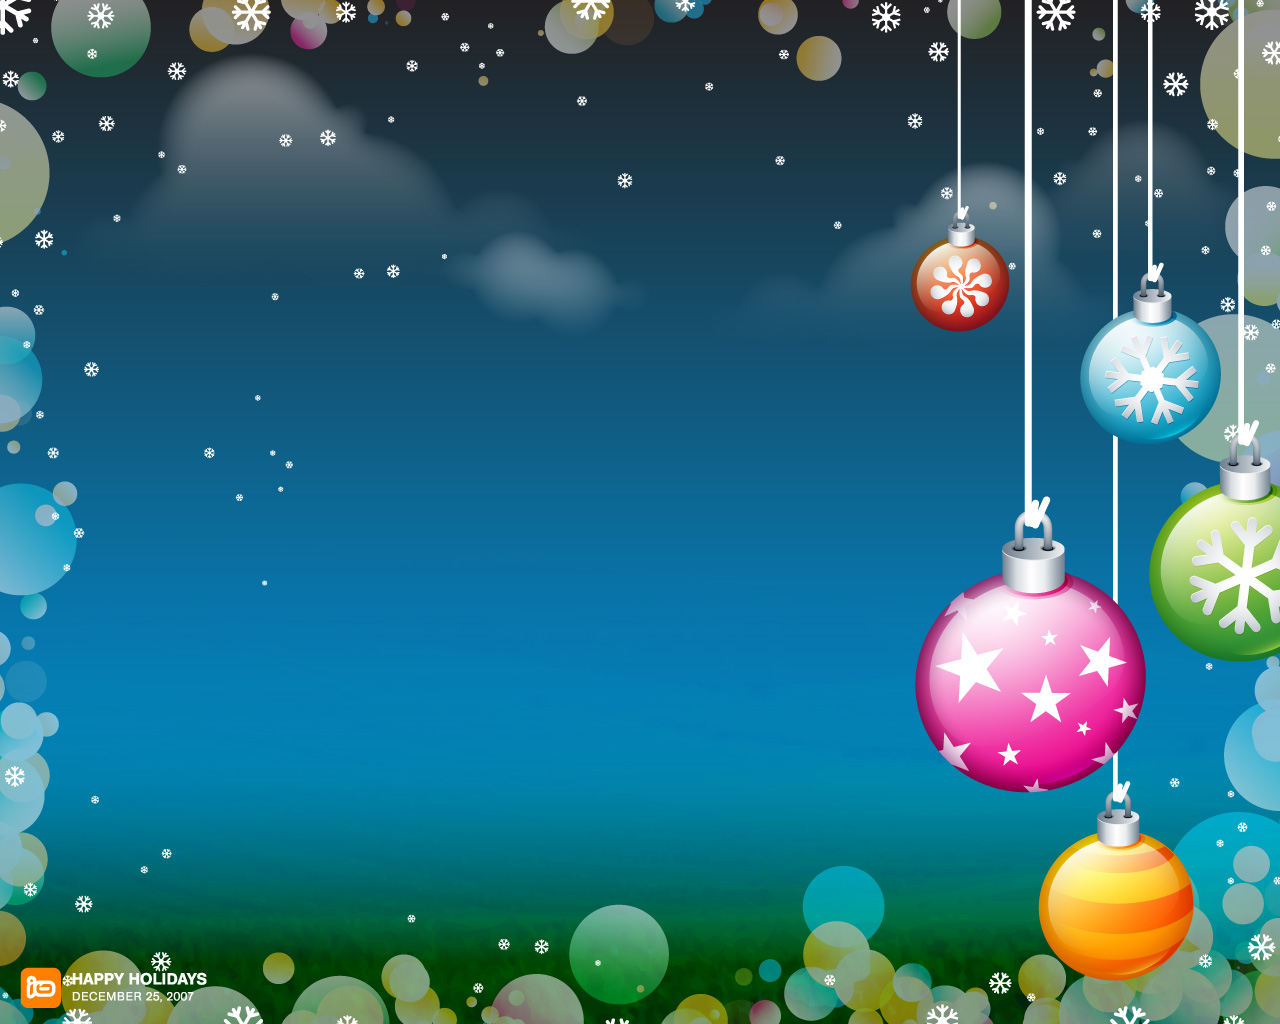 Christmas Vector Decorations Wallpapers Christian Wallpapers 1280x1024